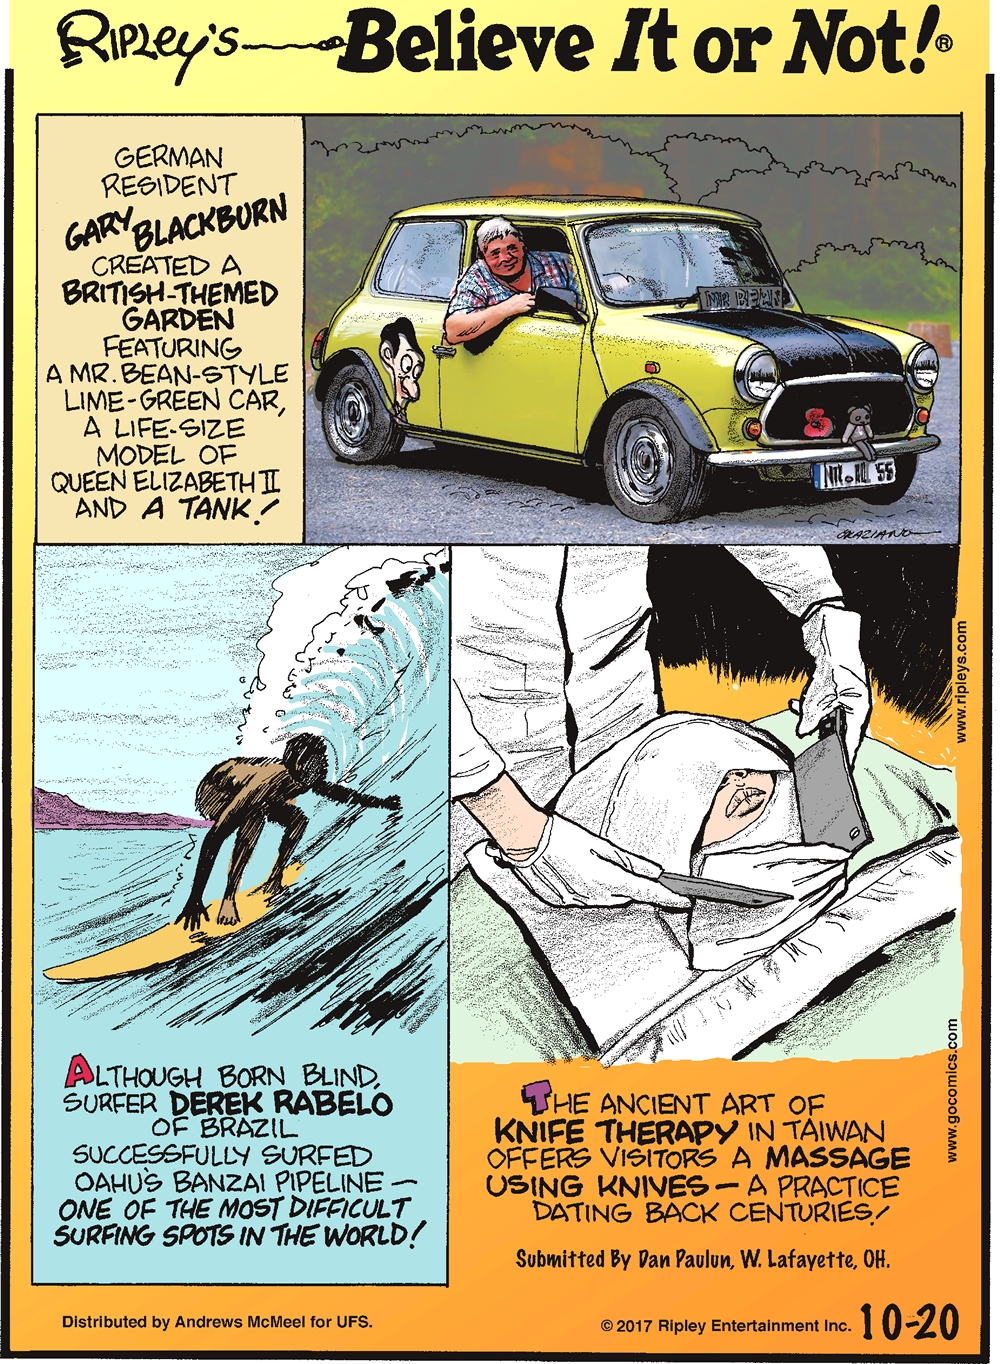 German resident Gary Blackburn created a British-themed garden featuring a Mr. Bean-style lime-green car, a life-size model of Queen Elizabeth II and a tank!-------------------- Although born blind, surfer Derek Rabelo of Brazil successfully surfed Oahu's Banzai Pipeline - one of the most difficult surfing spots in the world!-------------------- The ancient art of knife therapy in Taiwan offers visitors a massage using knives - a practice dating back centuries! Submitted by Dan Paulun, W. Lafayette, OH.